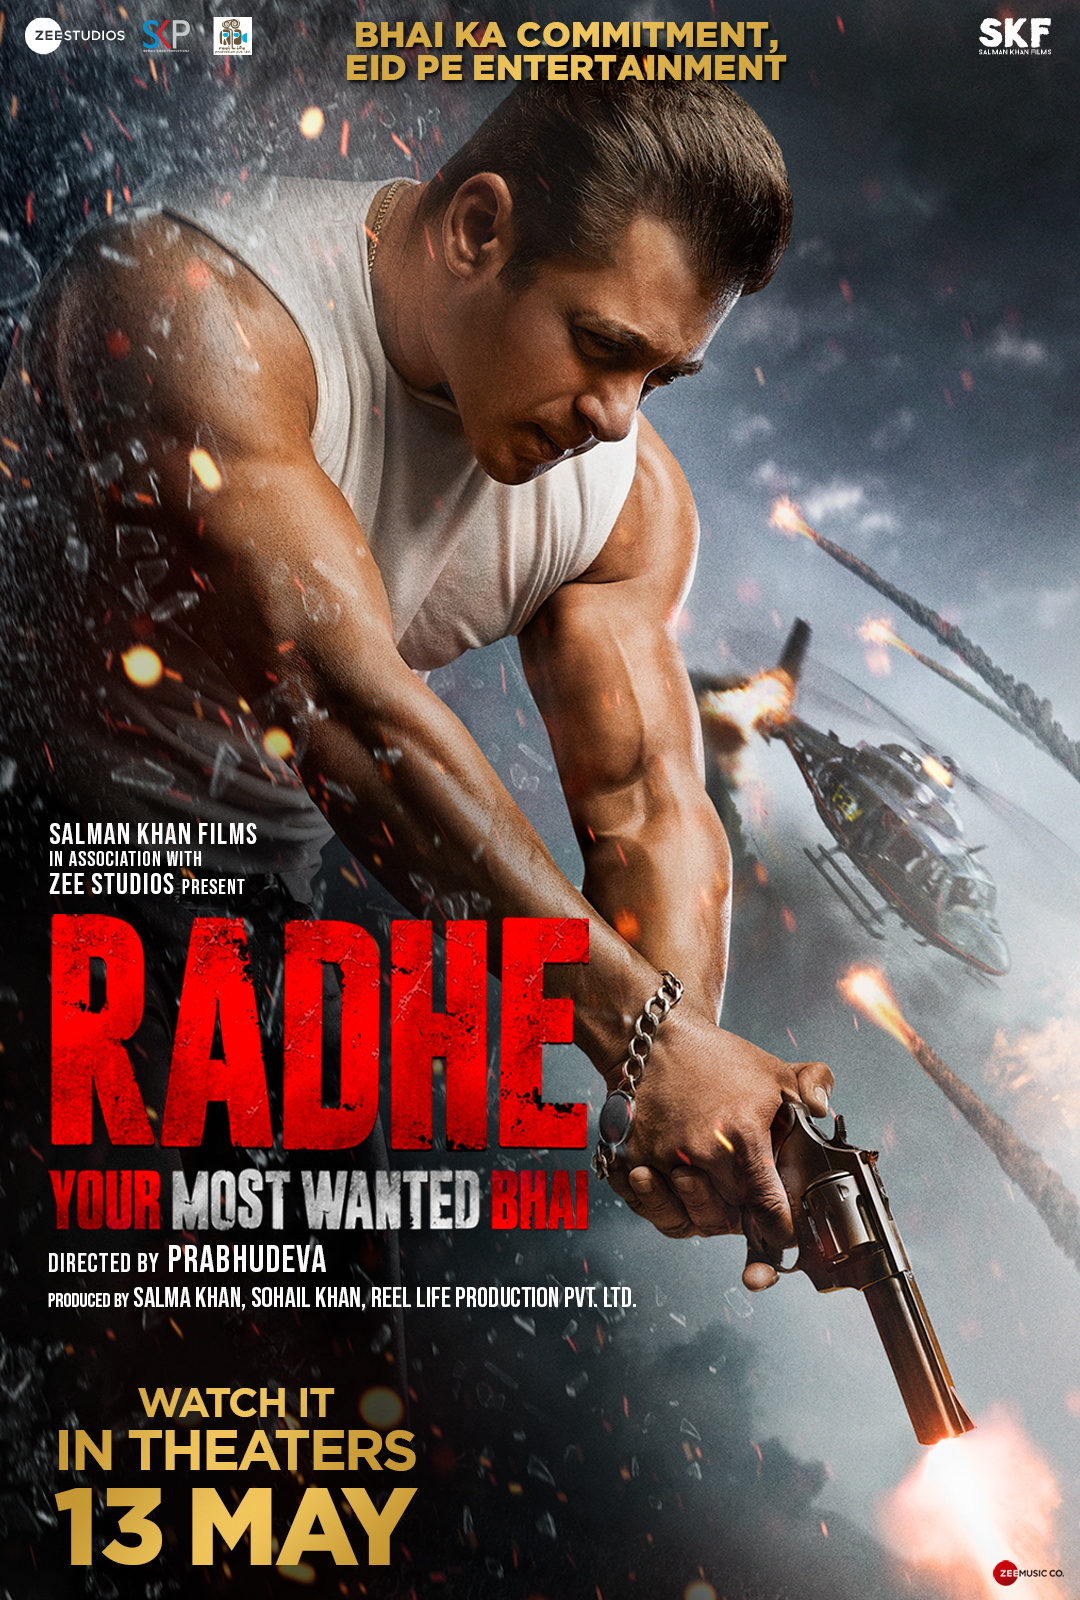 Movie poster image for RADHE - THE MOST WANTED BHAI